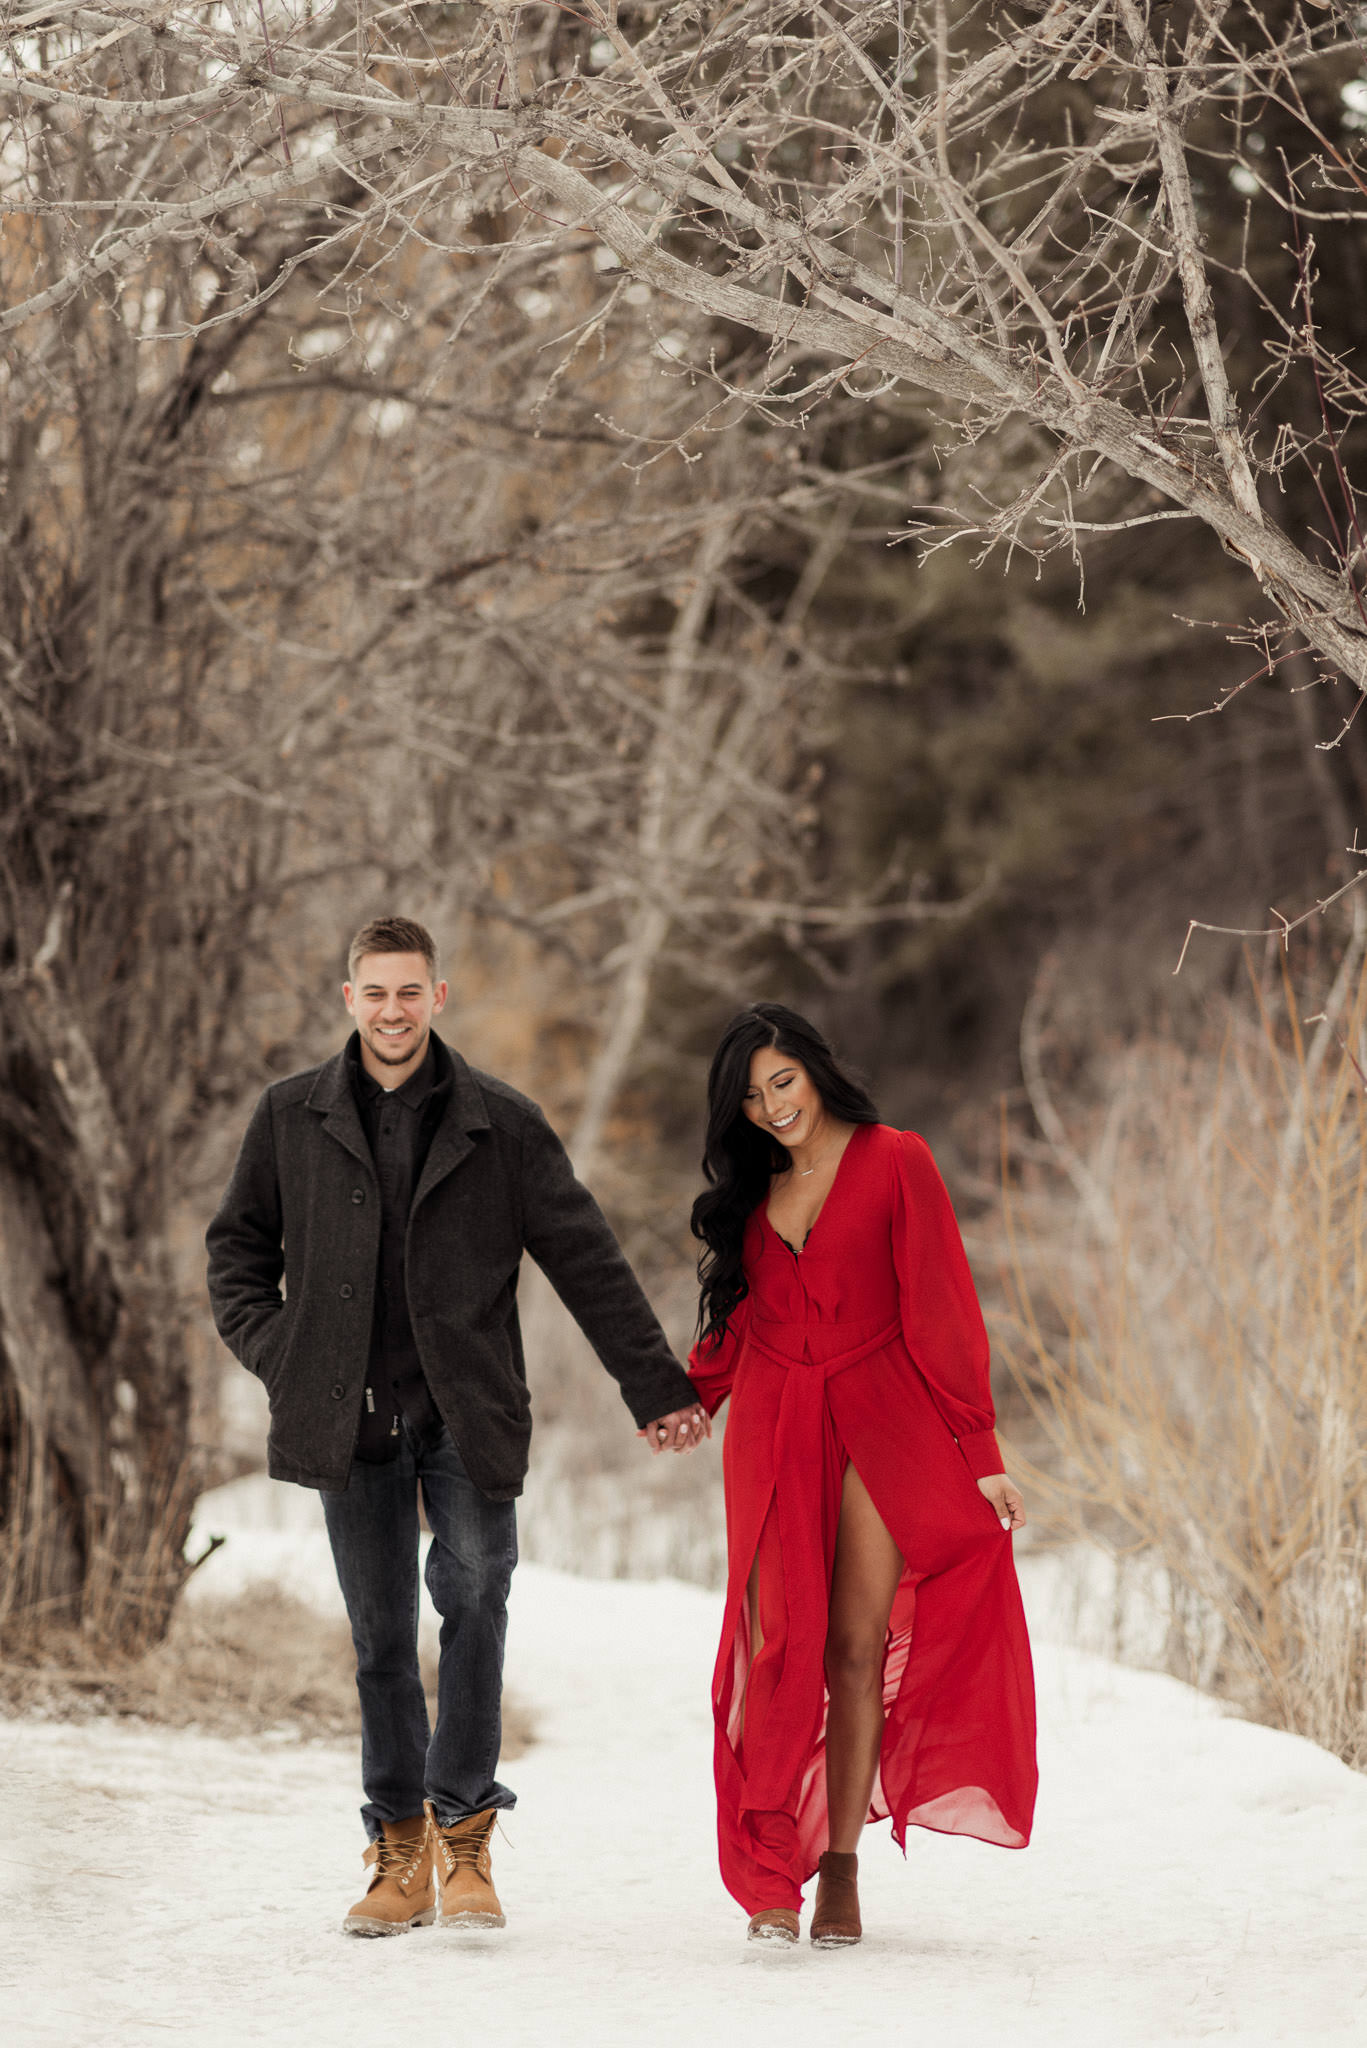 sandra-ryan-colorado-winter-snow-engagement-couples-valentines-red-houston-photographer-sm-14.jpg